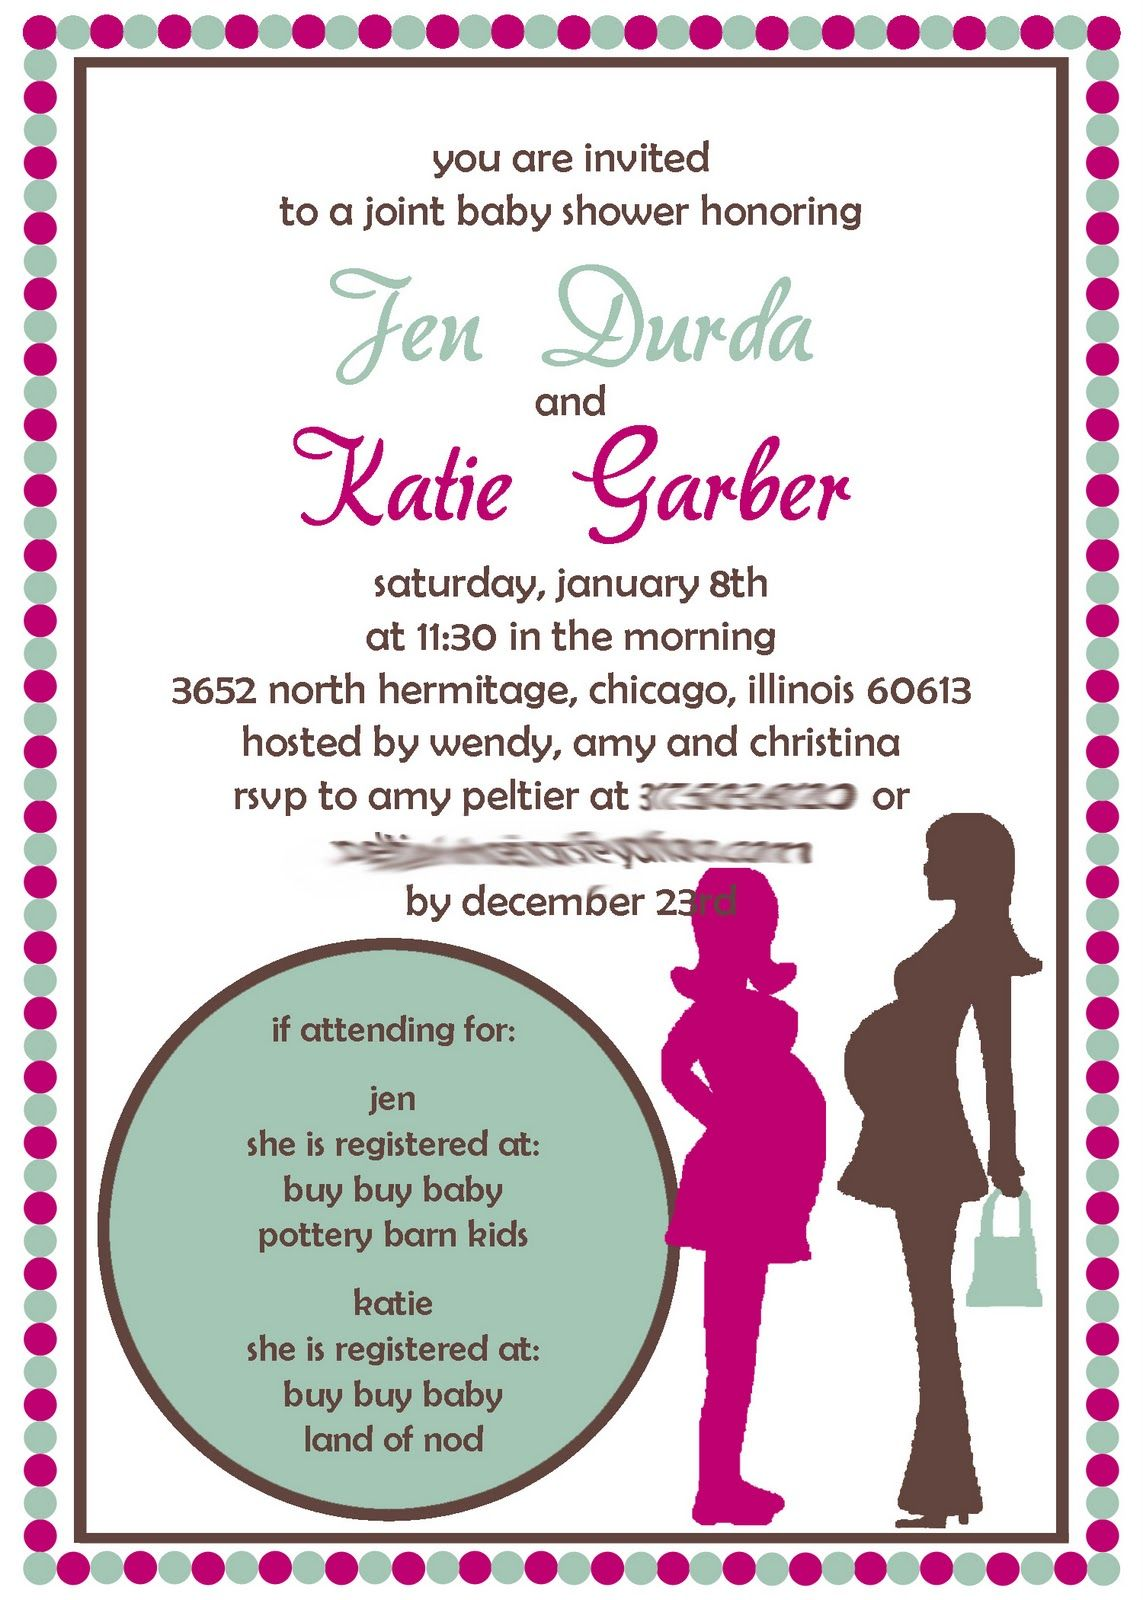 Joint baby shower invitation google image result for http3bp baby shower invitation google image result for http3bpspotbmdnh25ge4ttm9epr6gpiaaaaaaaabda to xutbitks1600double babyshowerblog filmwisefo